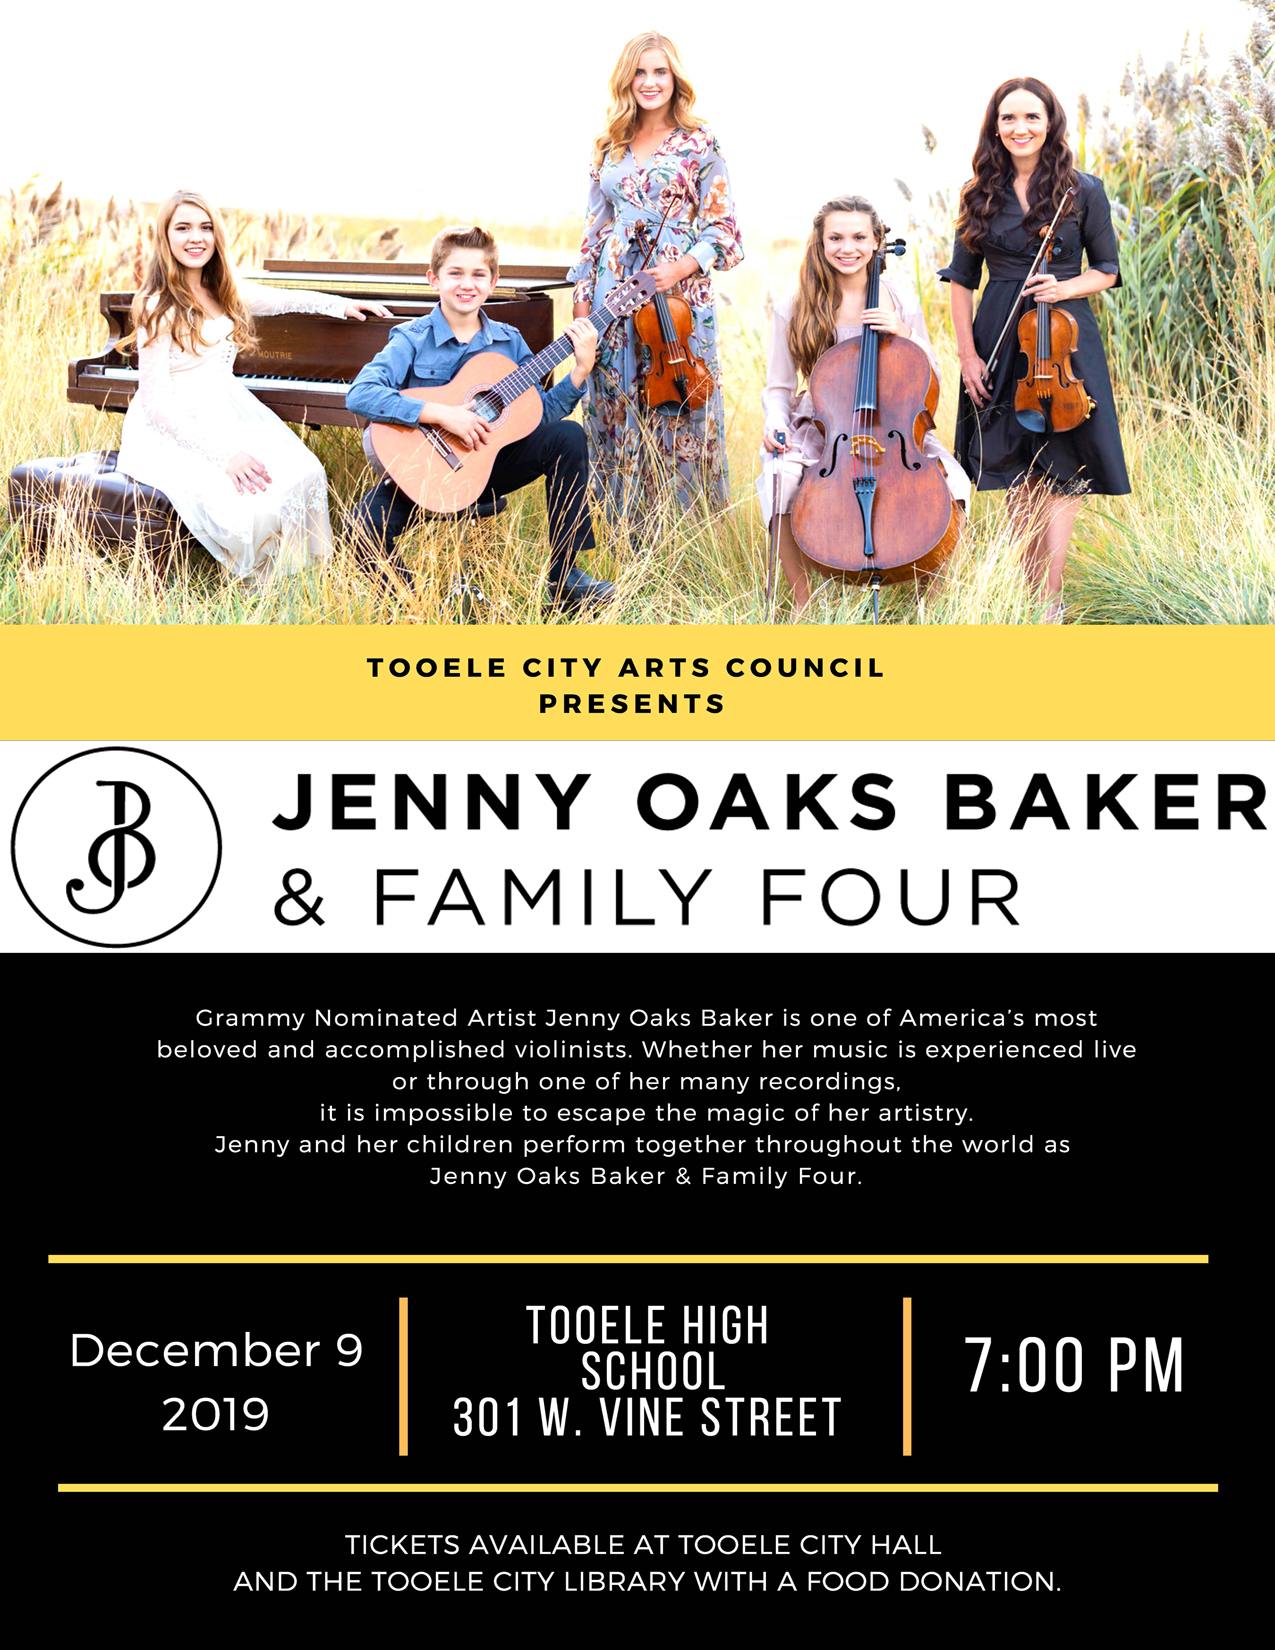 "Holiday Concert Tickets on Sale Now for ""Jenny Oaks Baker and Family Four"" @ Tooele City Hall or the Tooele City Library"